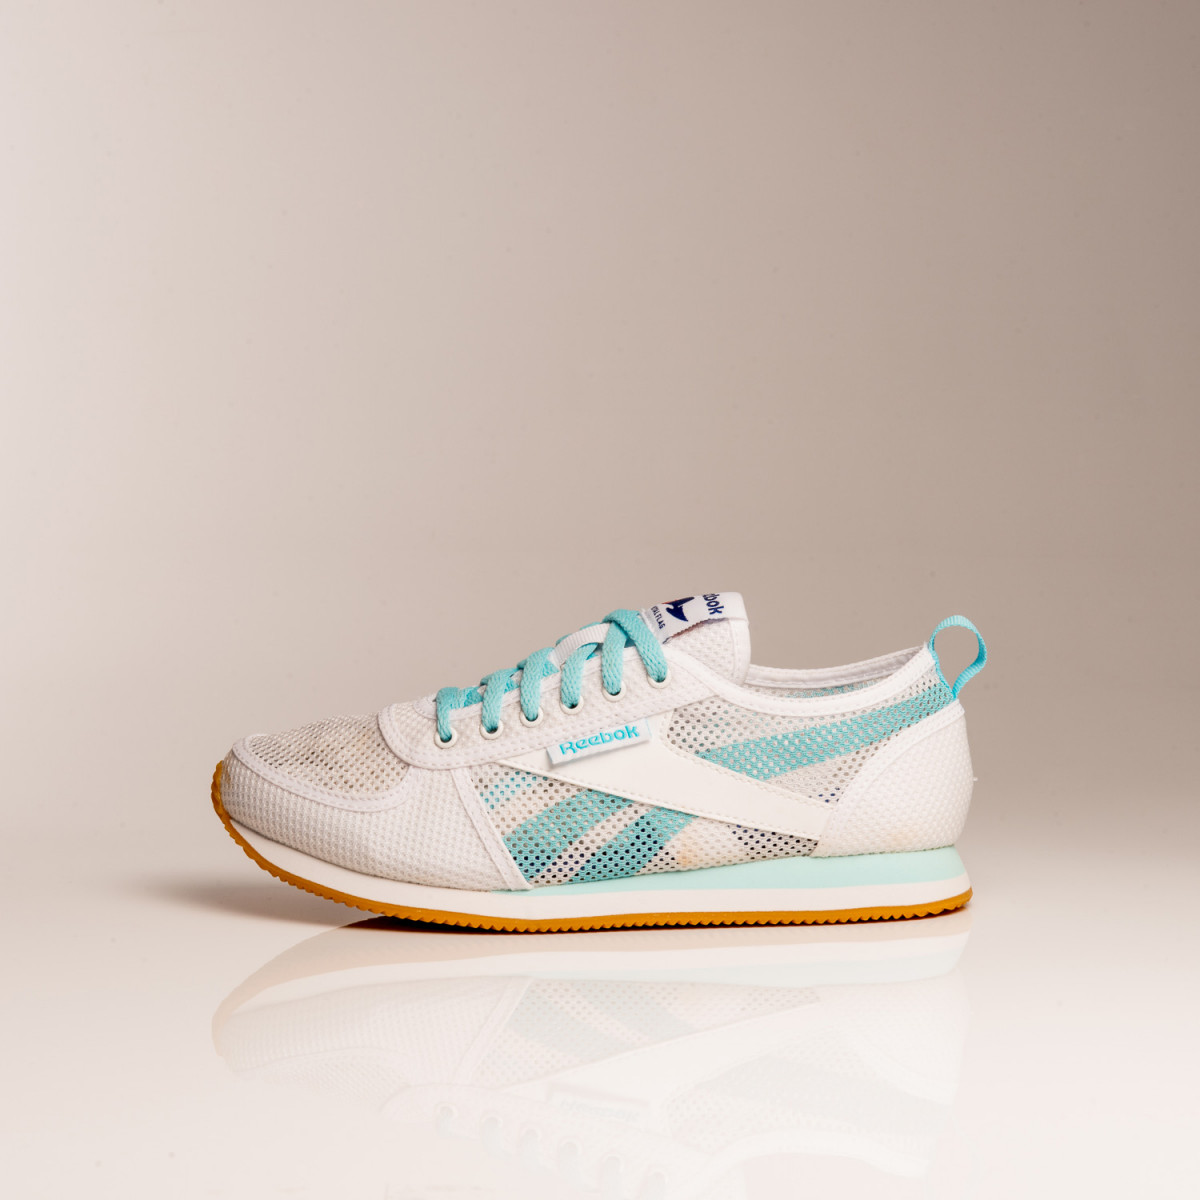 ZAPATILLAS REEBOK ROYAL CL JOGGER SE